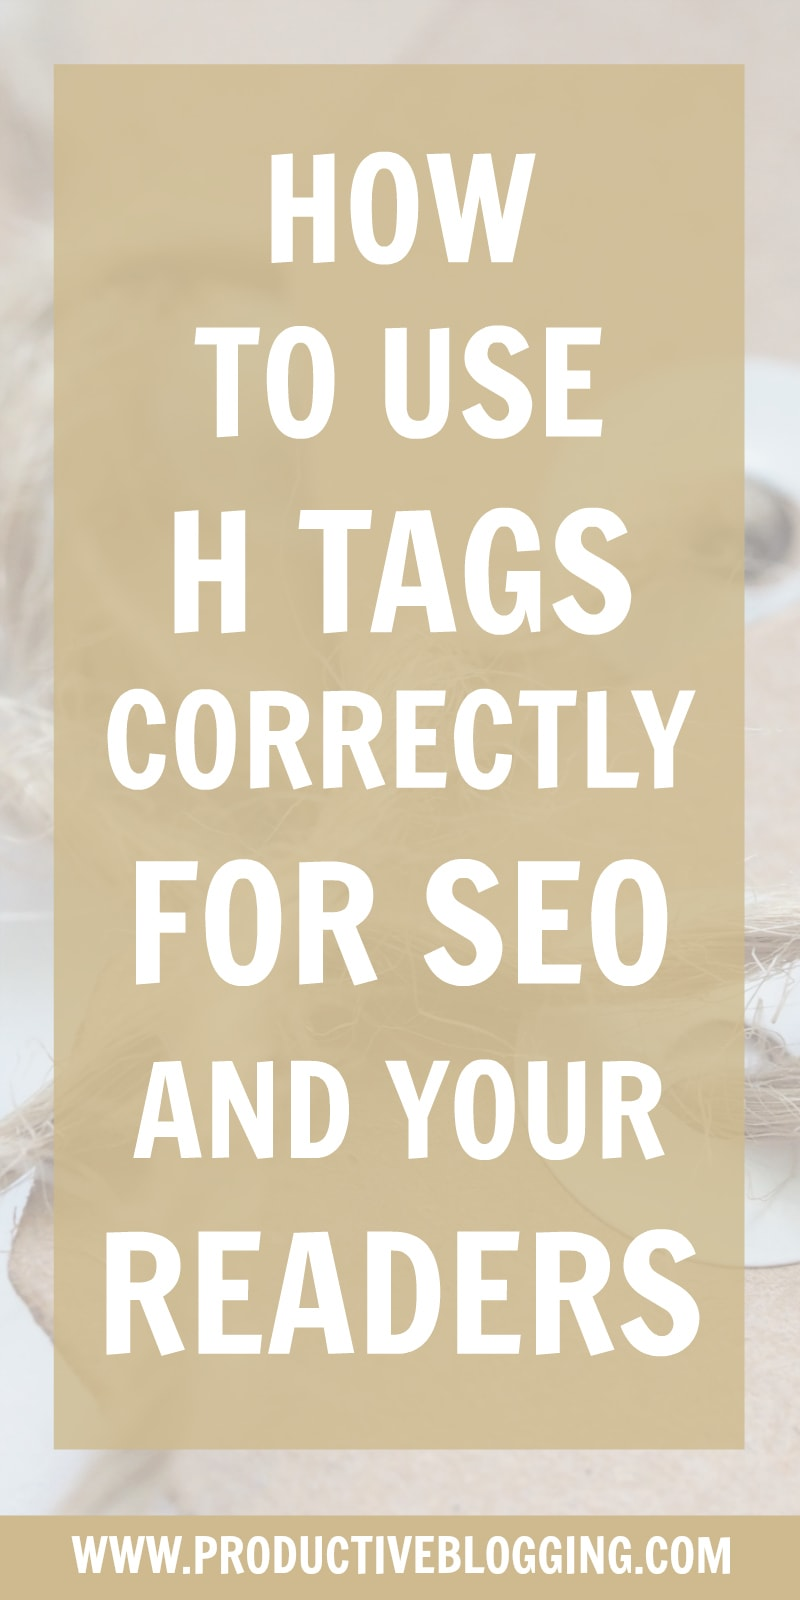 Heading Tags (H1, H2, H3, H4, H5, H6) help both search engines and your readers read and understand your blog posts and pages better. Used correctly they can improve your SEO. Here's how… #htags #headingtags #headings #subheadings #blogheadings #wordpressheadings #SEOforbloggers #SEO #SEOtips #SEOhacks #searchengineoptimisation #searchengineoptimization #keywords #growyourblog #bloggrowth #bloggrowthhacks #bloggingtips #blogginghacks #blogging #bloggers #productiveblogging